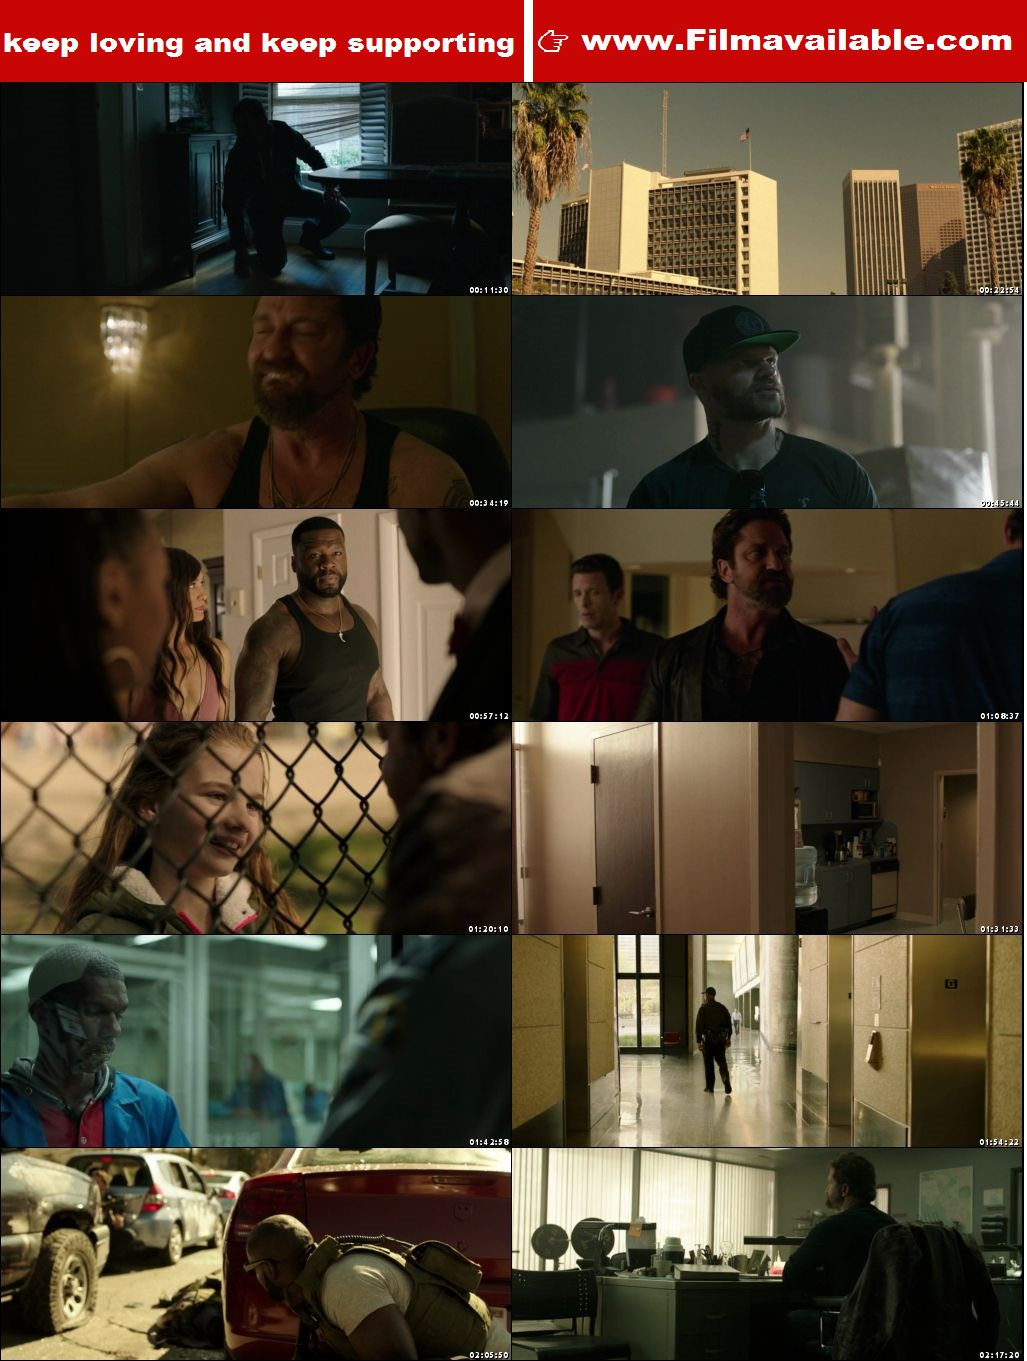 Den Of Thieves 2018 latest movies free download, Den Of Thieves 2018 hd movies download, Den Of Thieves 2018 new movie download,Den Of Thieves 2018 download free movies online, Den Of Thieves 2018 hd movies free download